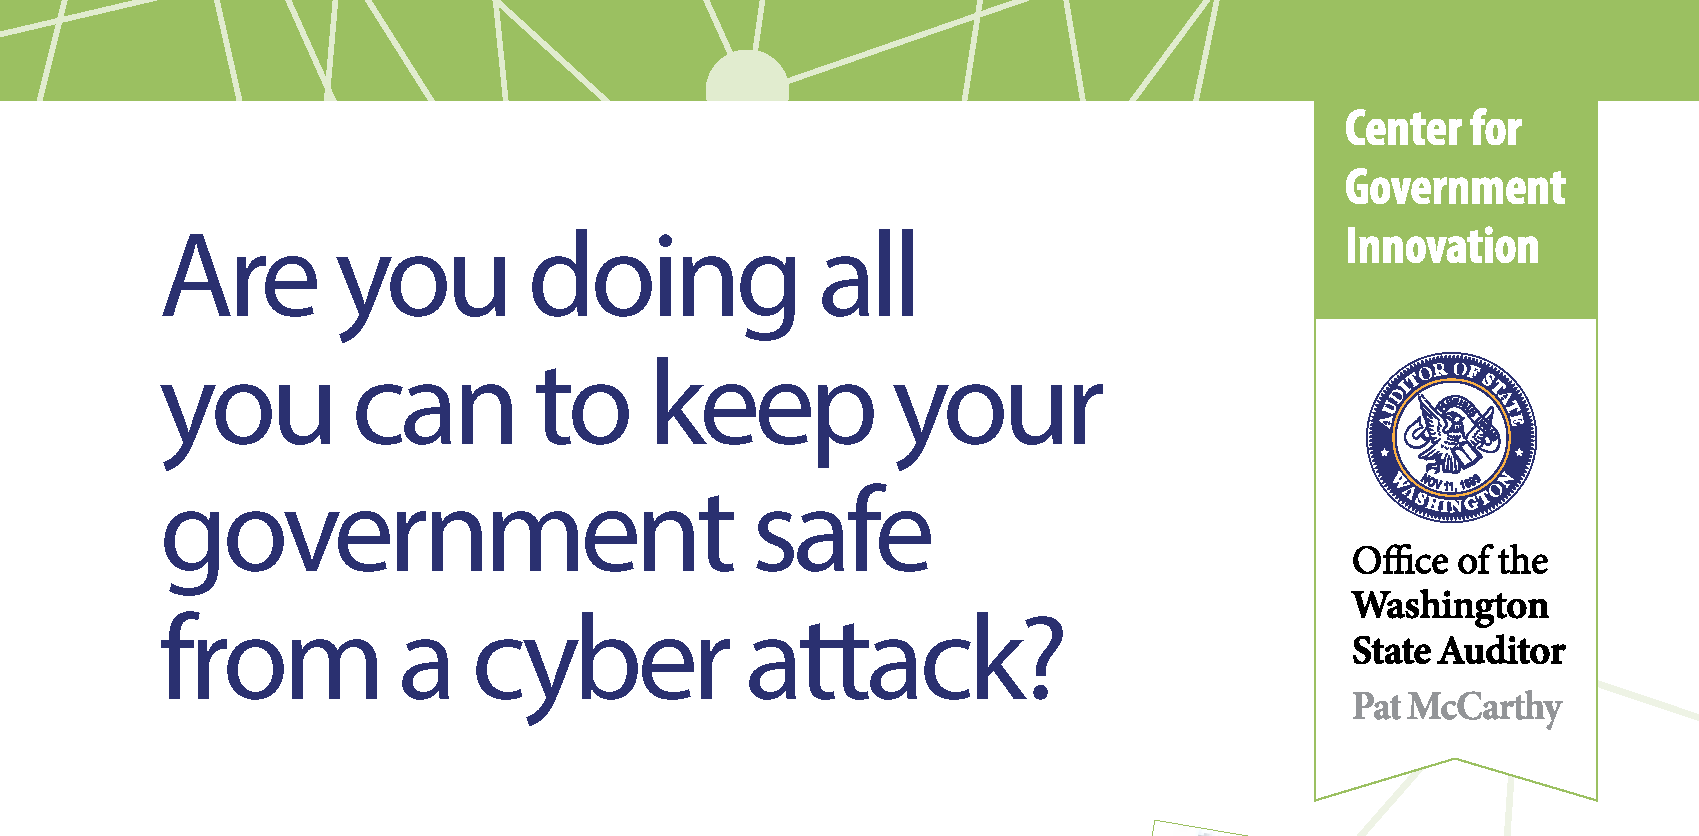 Cover of document with resources to help protect governments from cyber attack